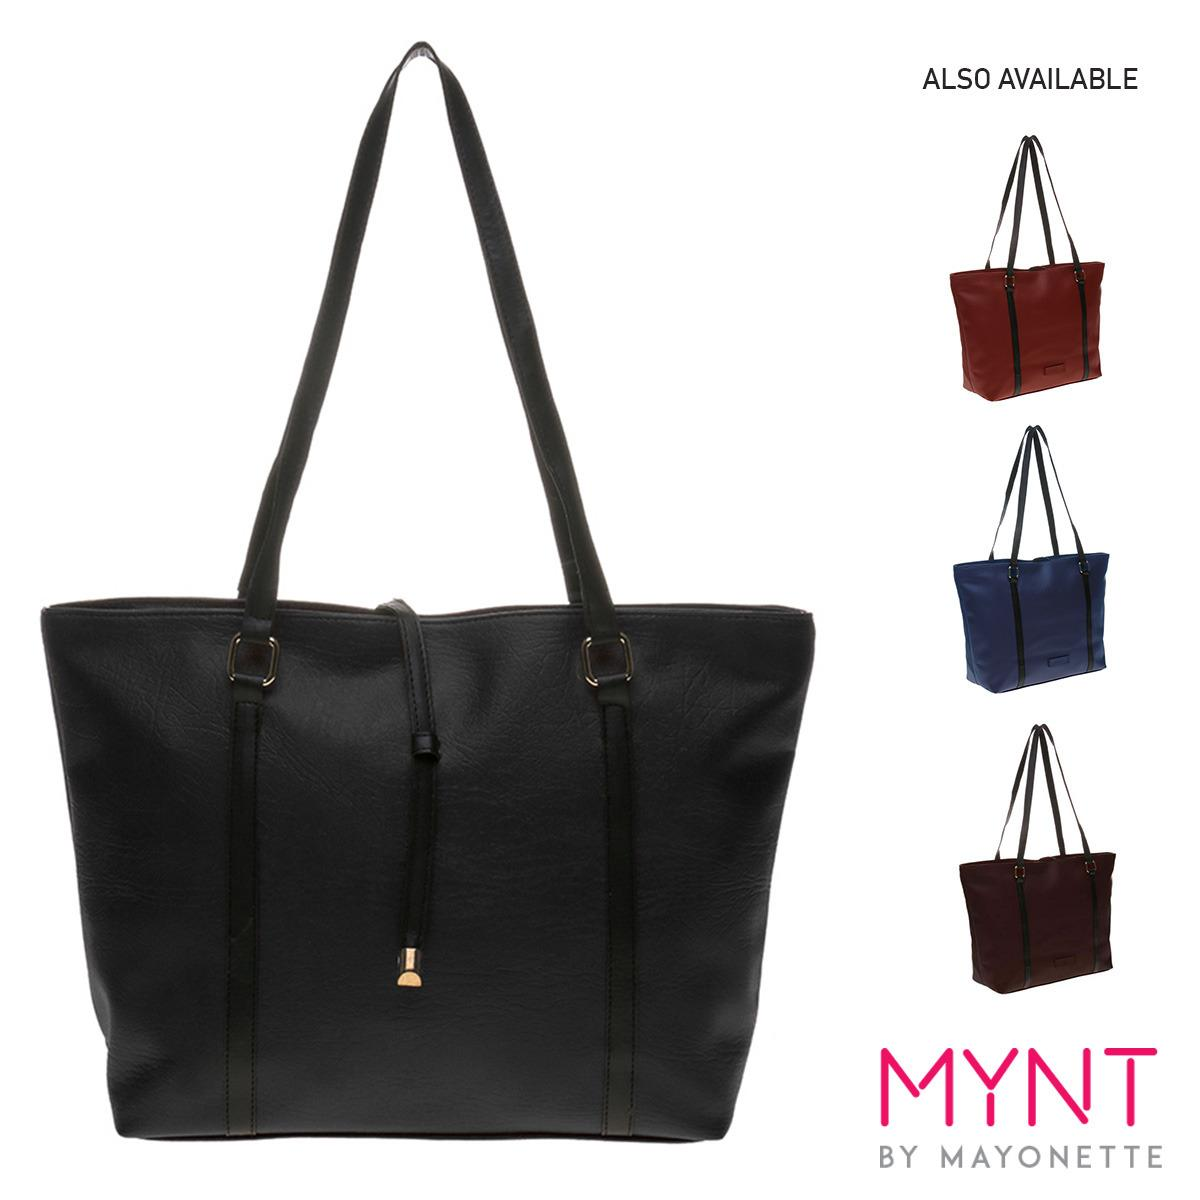 Tote Bag Wanita lazada. Beli di lazada. Desciption product MYNT by Mayonette Tas ...